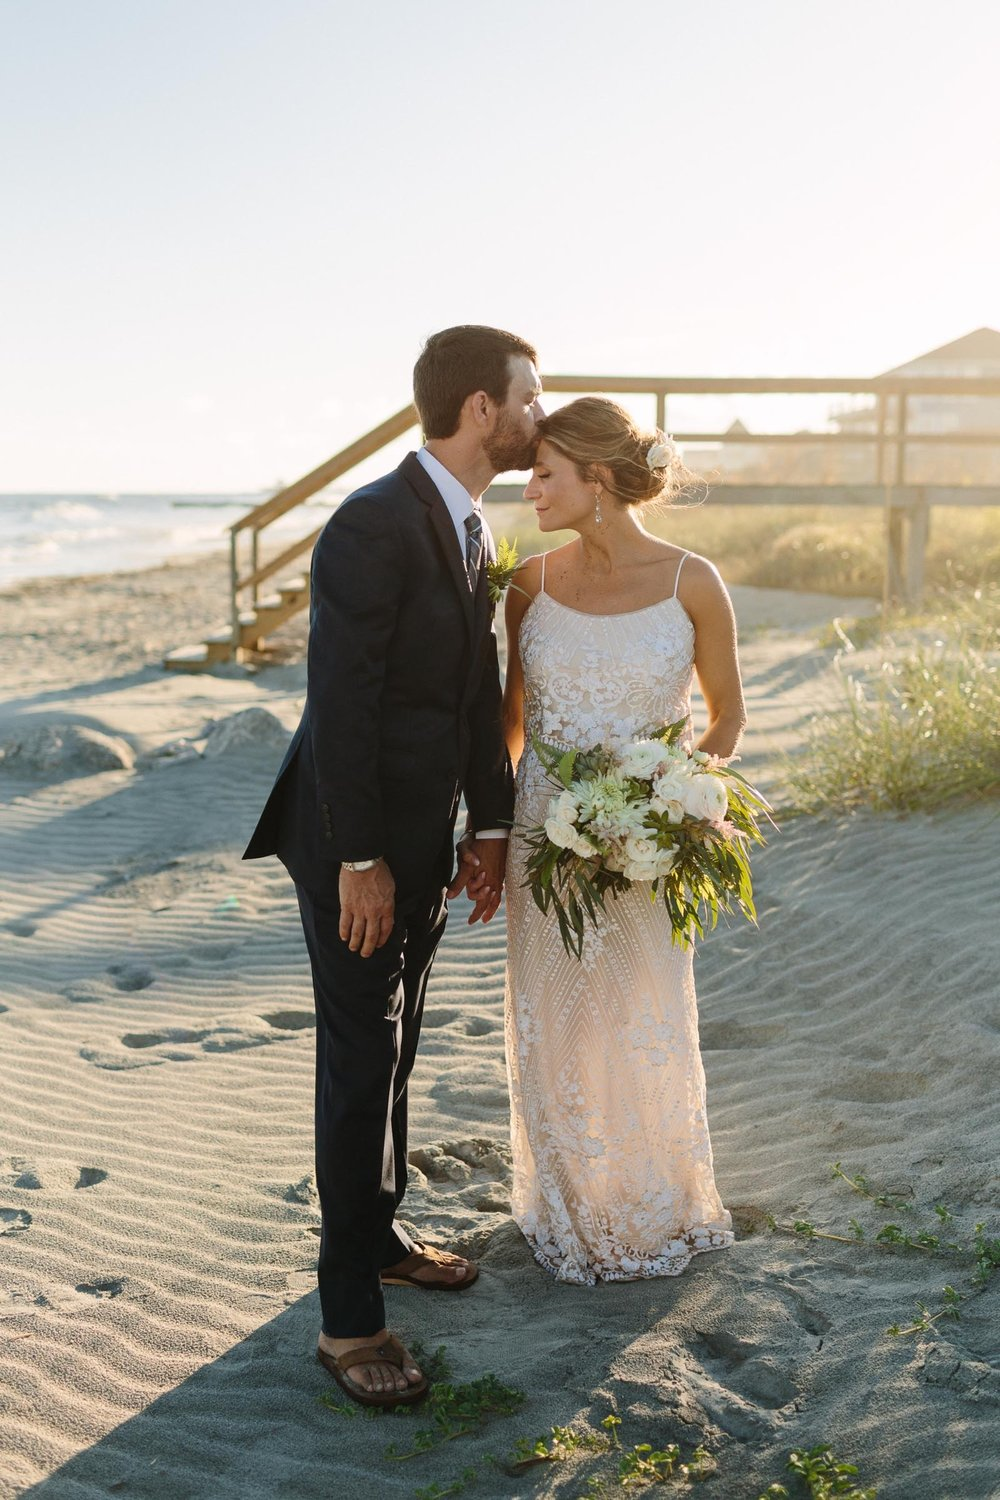 natalie_brooks-43_folly_beach_Wedding_Weddings_Charleston_CHS_Holy_City_brides_bride_Groom_House_Pour_flowers_intimate_Elopement_1500.jpg